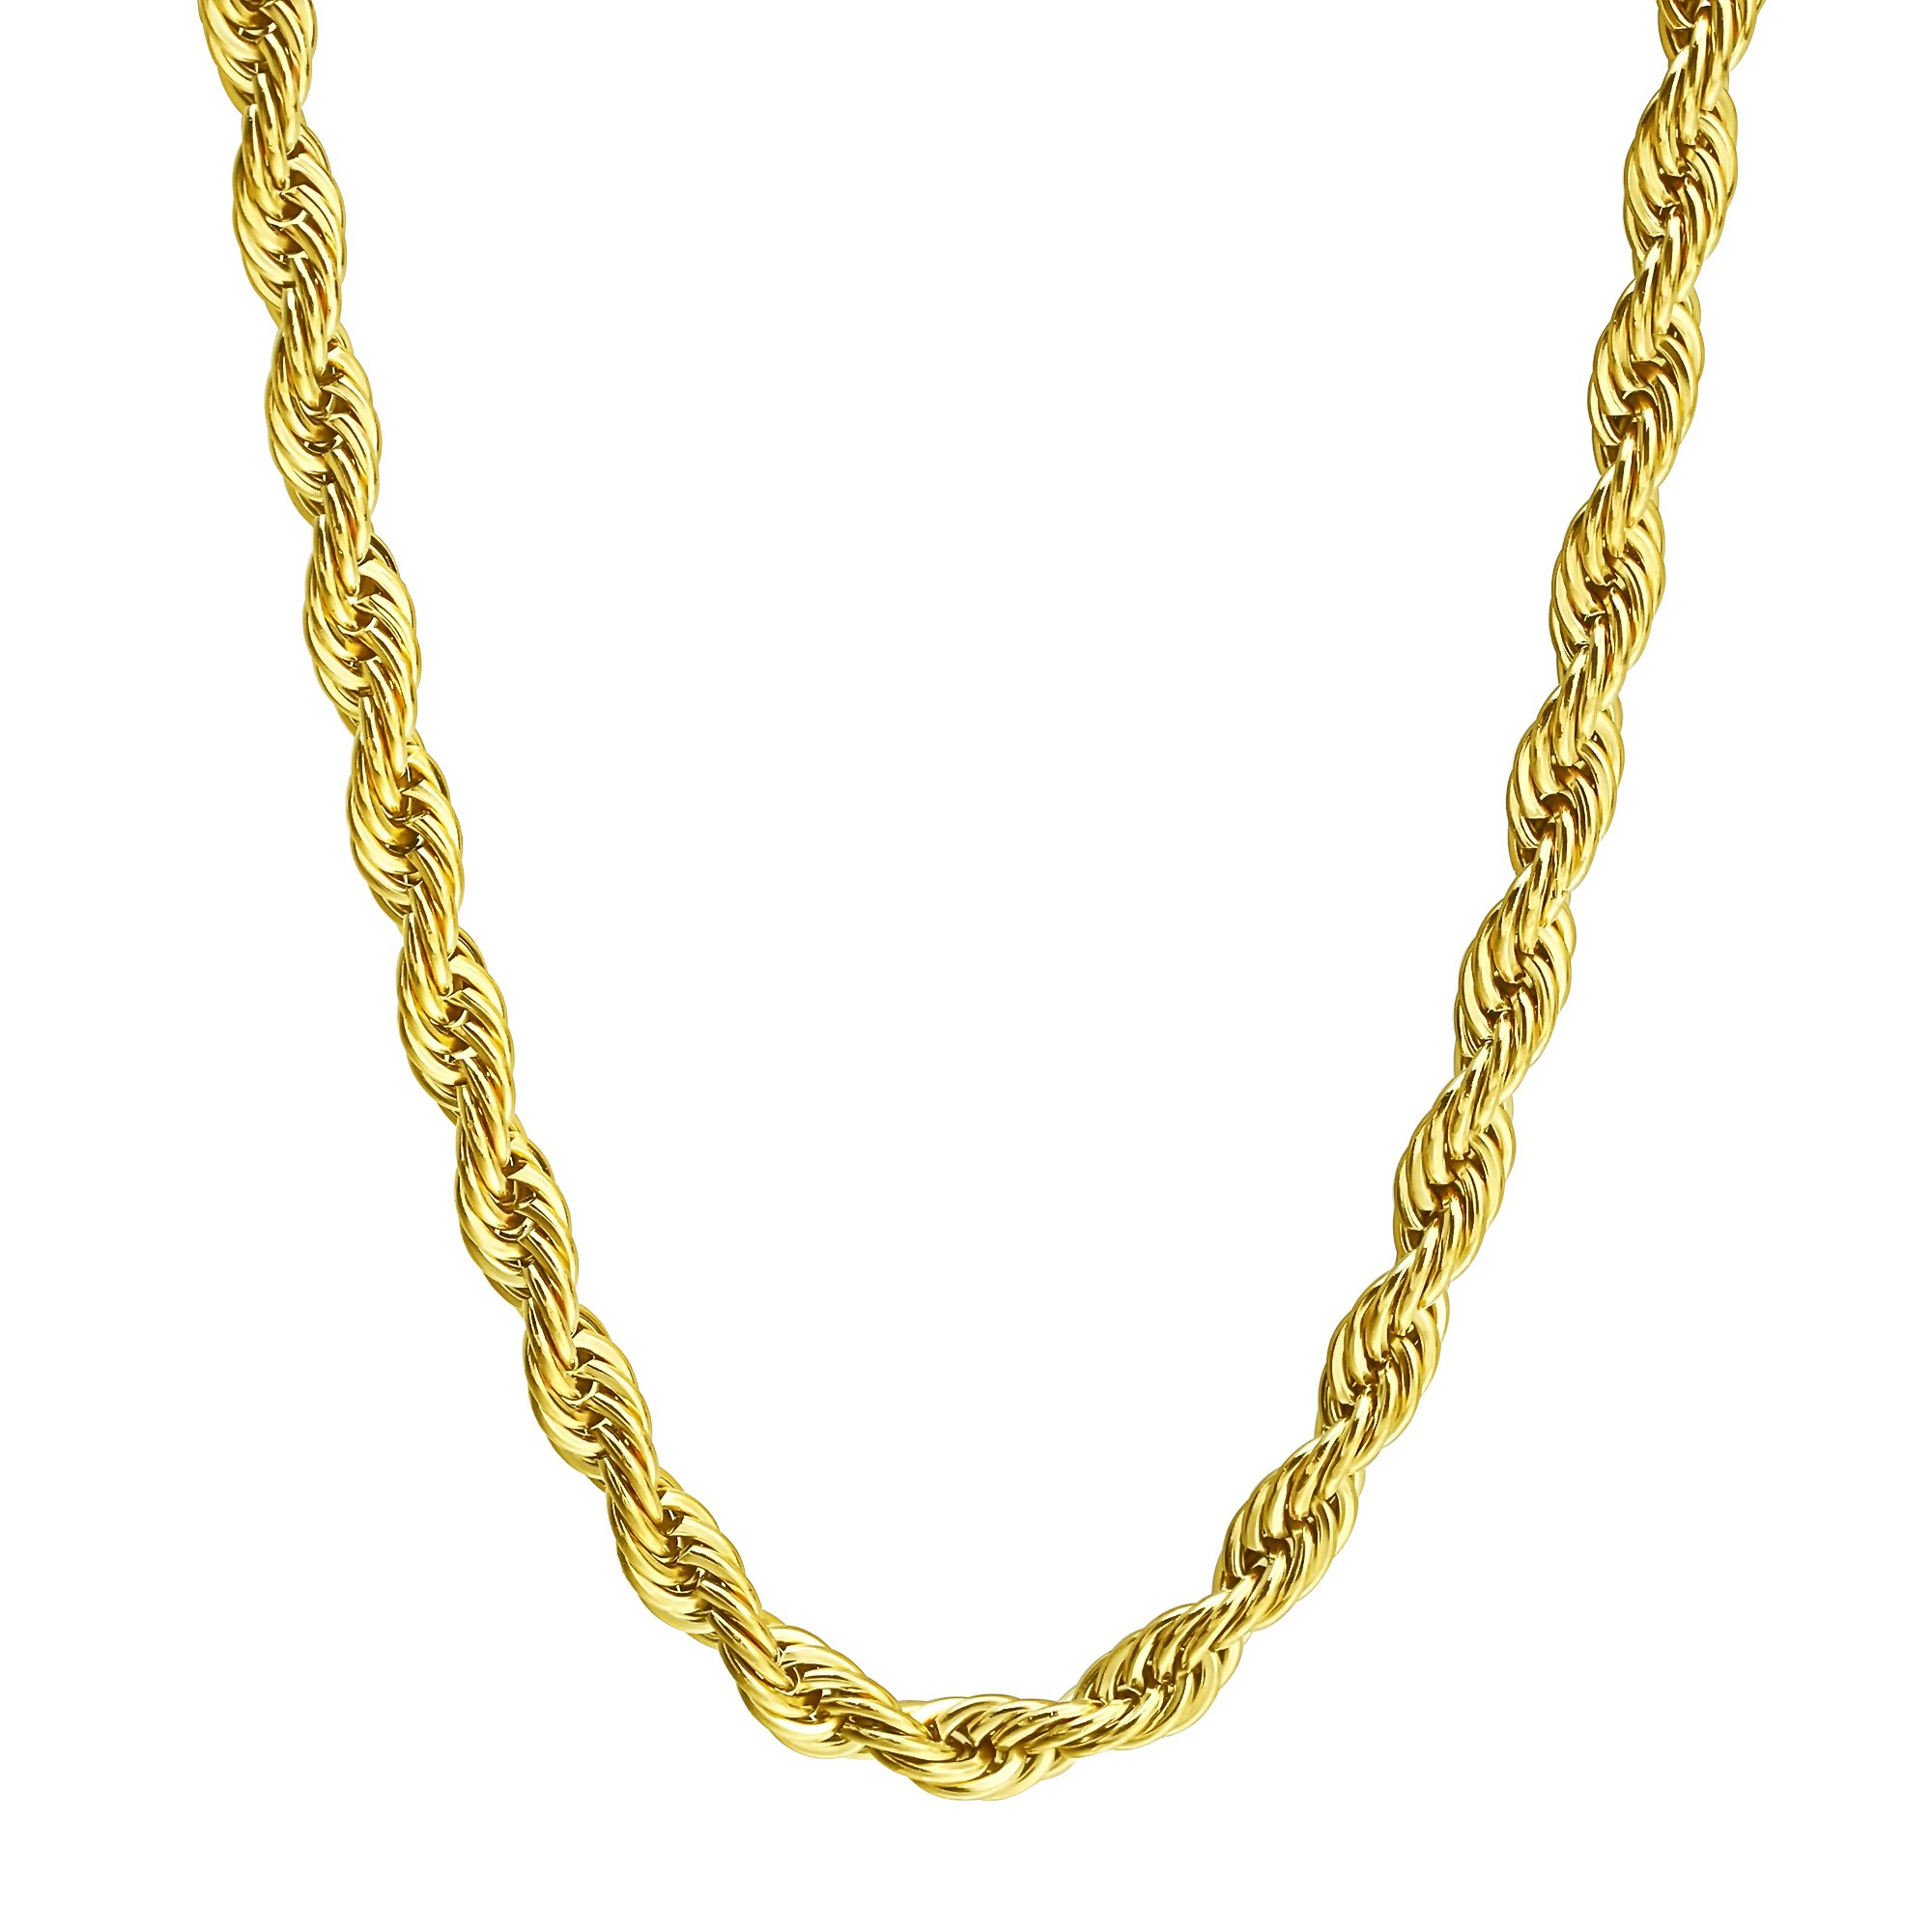 FIBO STEEL 8MM Stainless Steel Mens Womens Necklace Twist Rope Chain, 24 inches